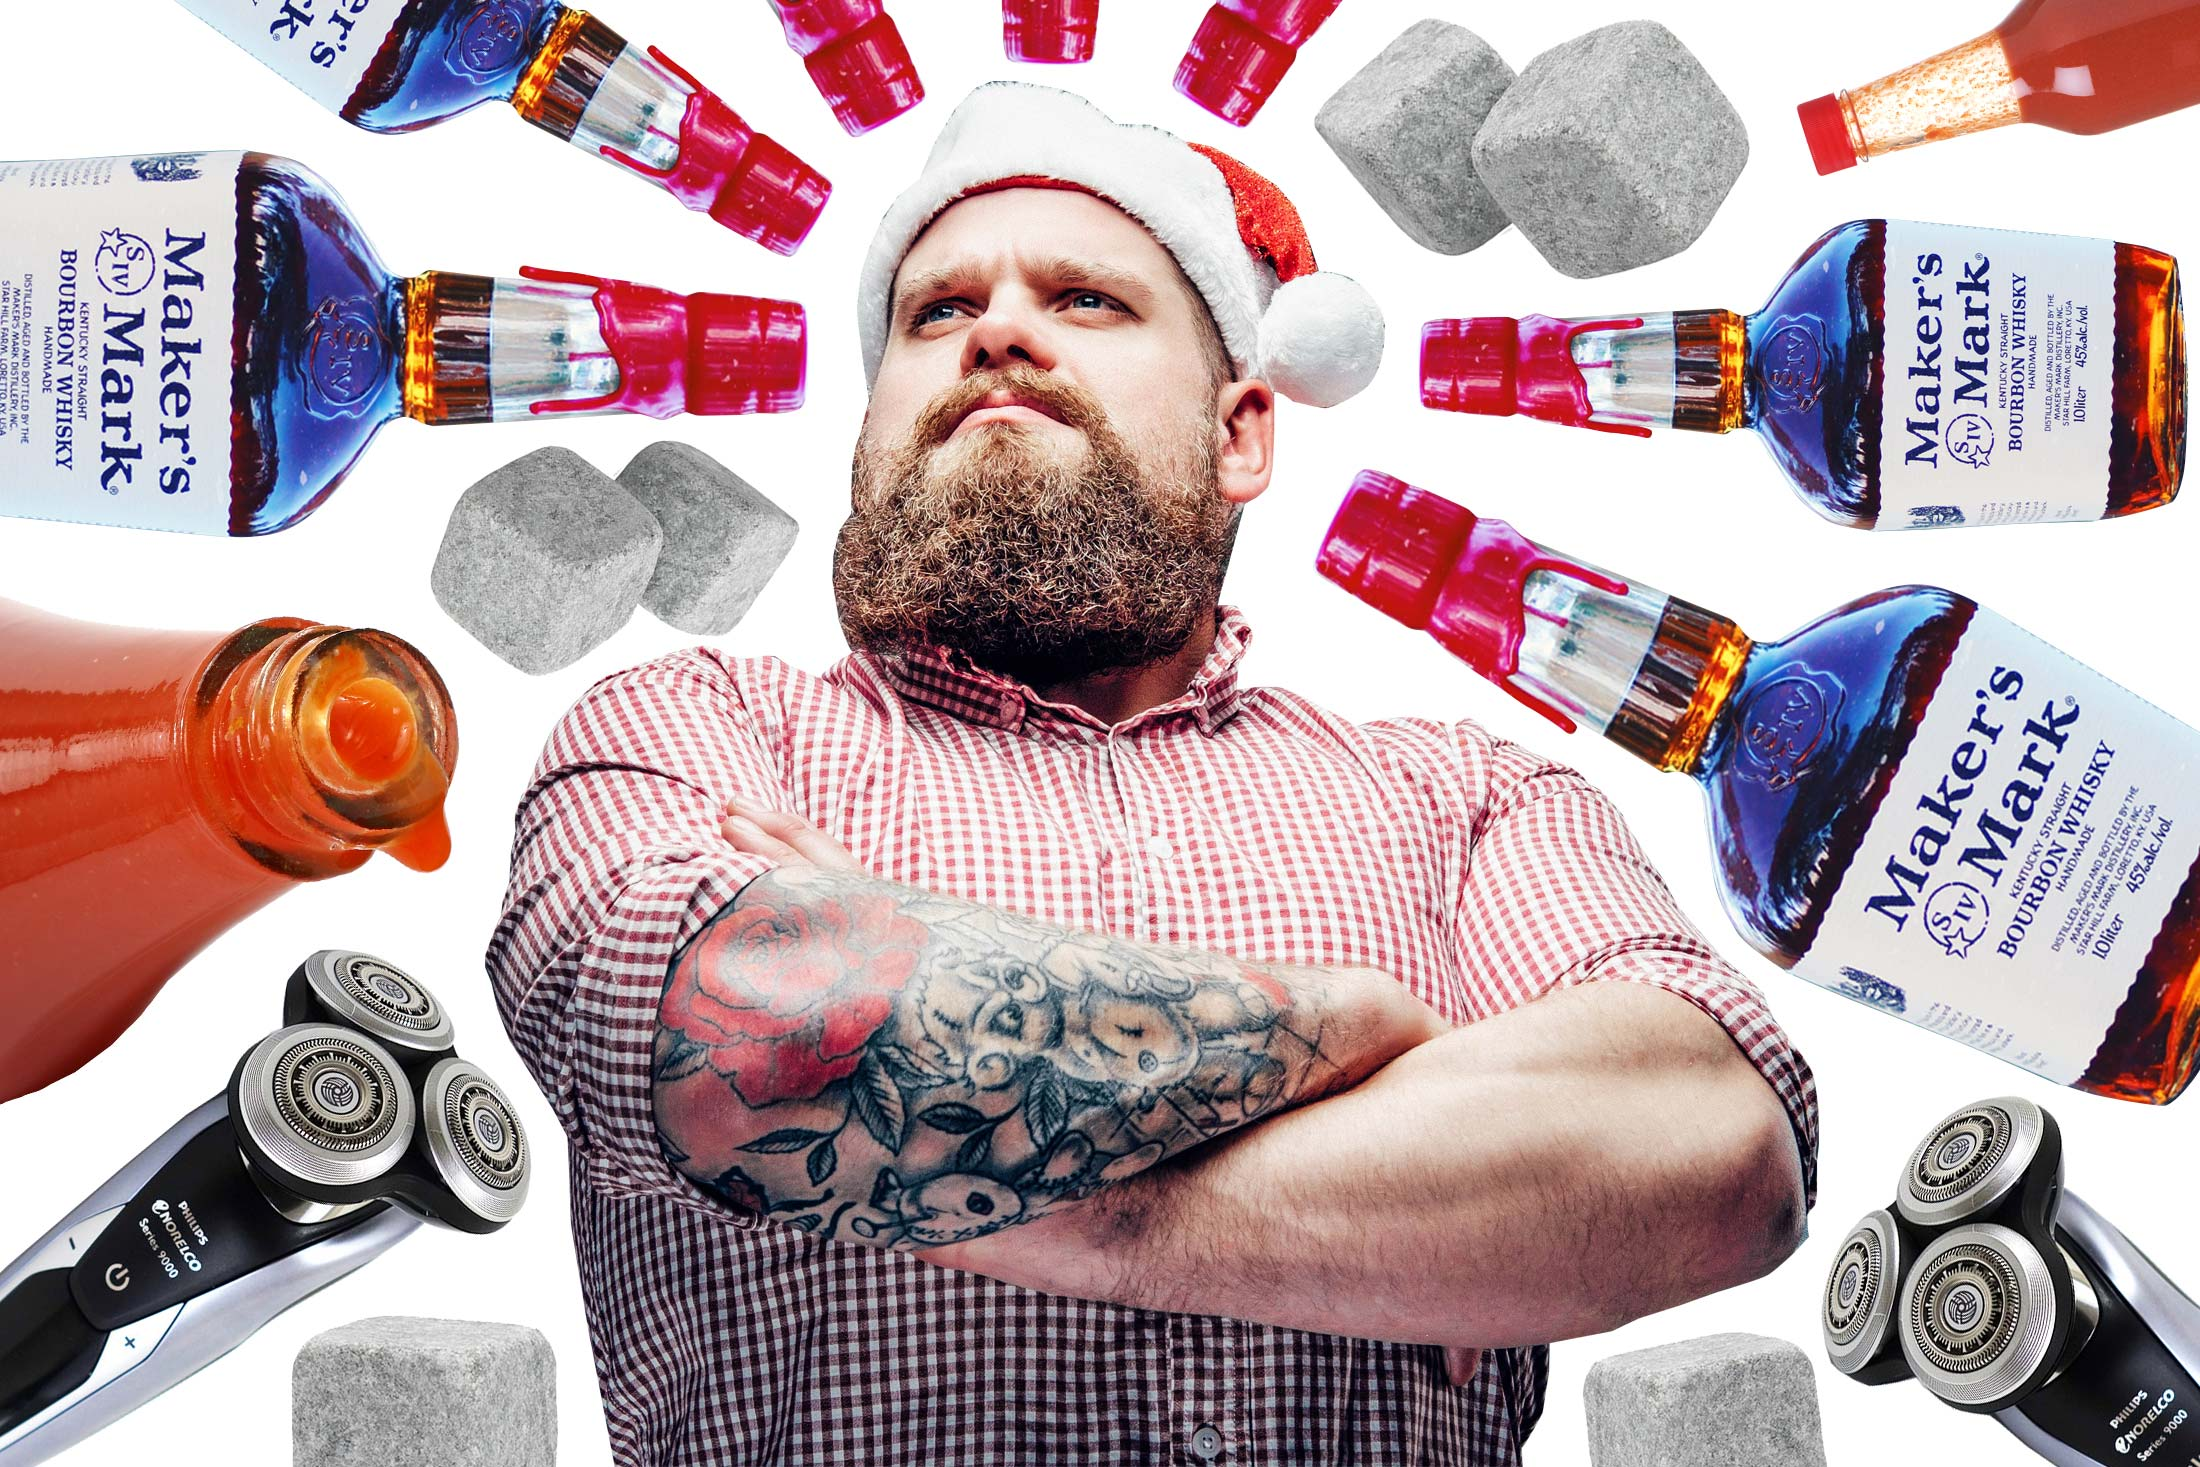 A man wearing a plaid shirt and Santa Claus hat surrounded by a mandala of whiskey hot sauce and beard trimming appliances.